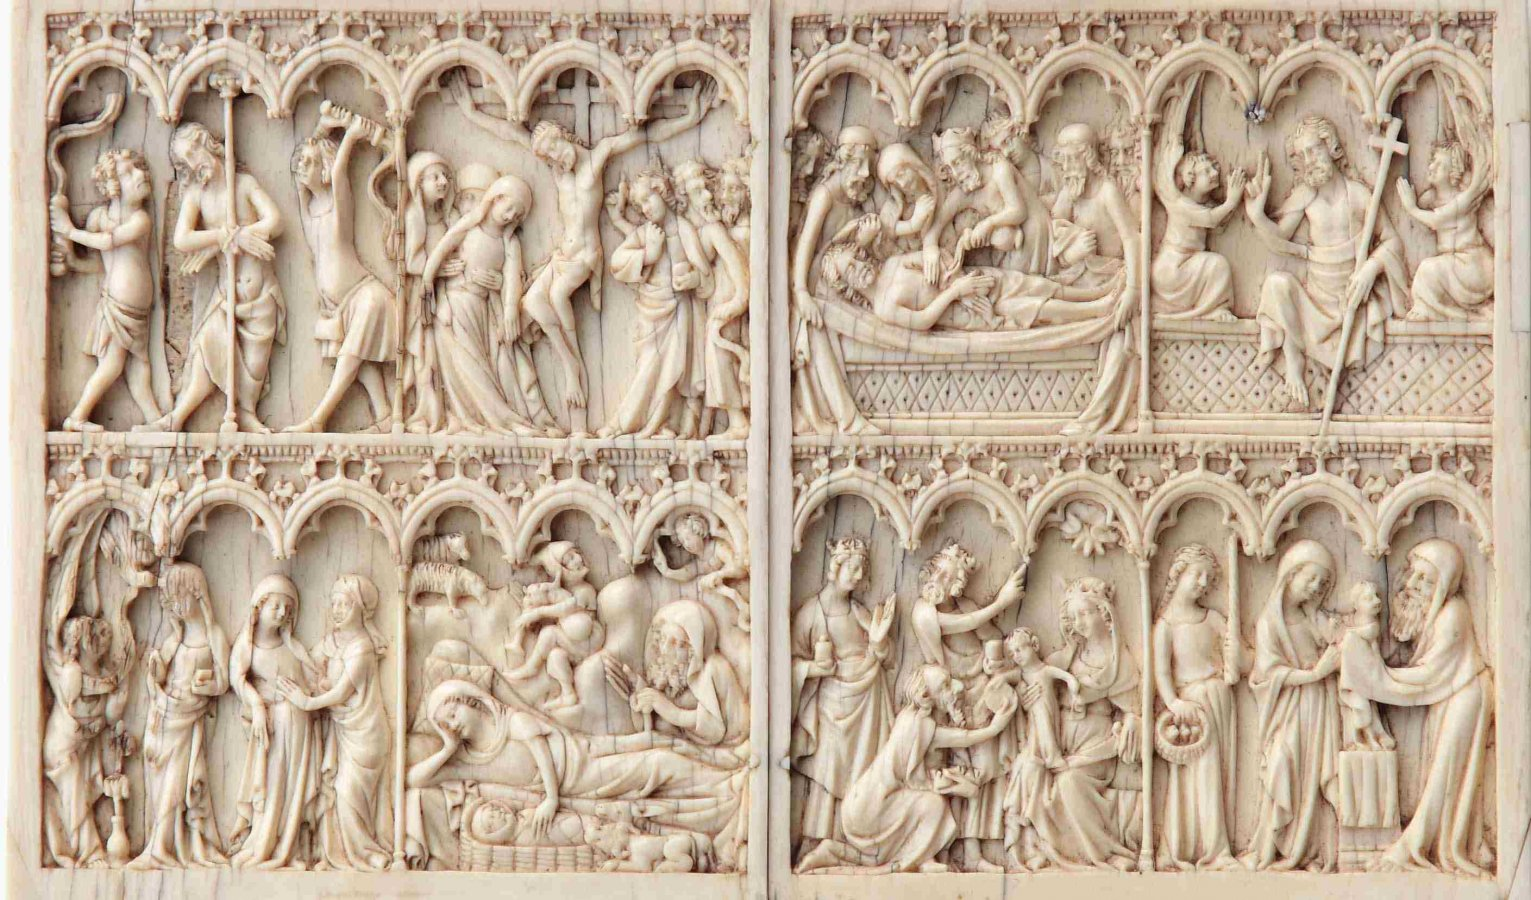 Anonymous French Master, Diptych with Scenes from the Life and Passion of Christ, first half of the 14th century